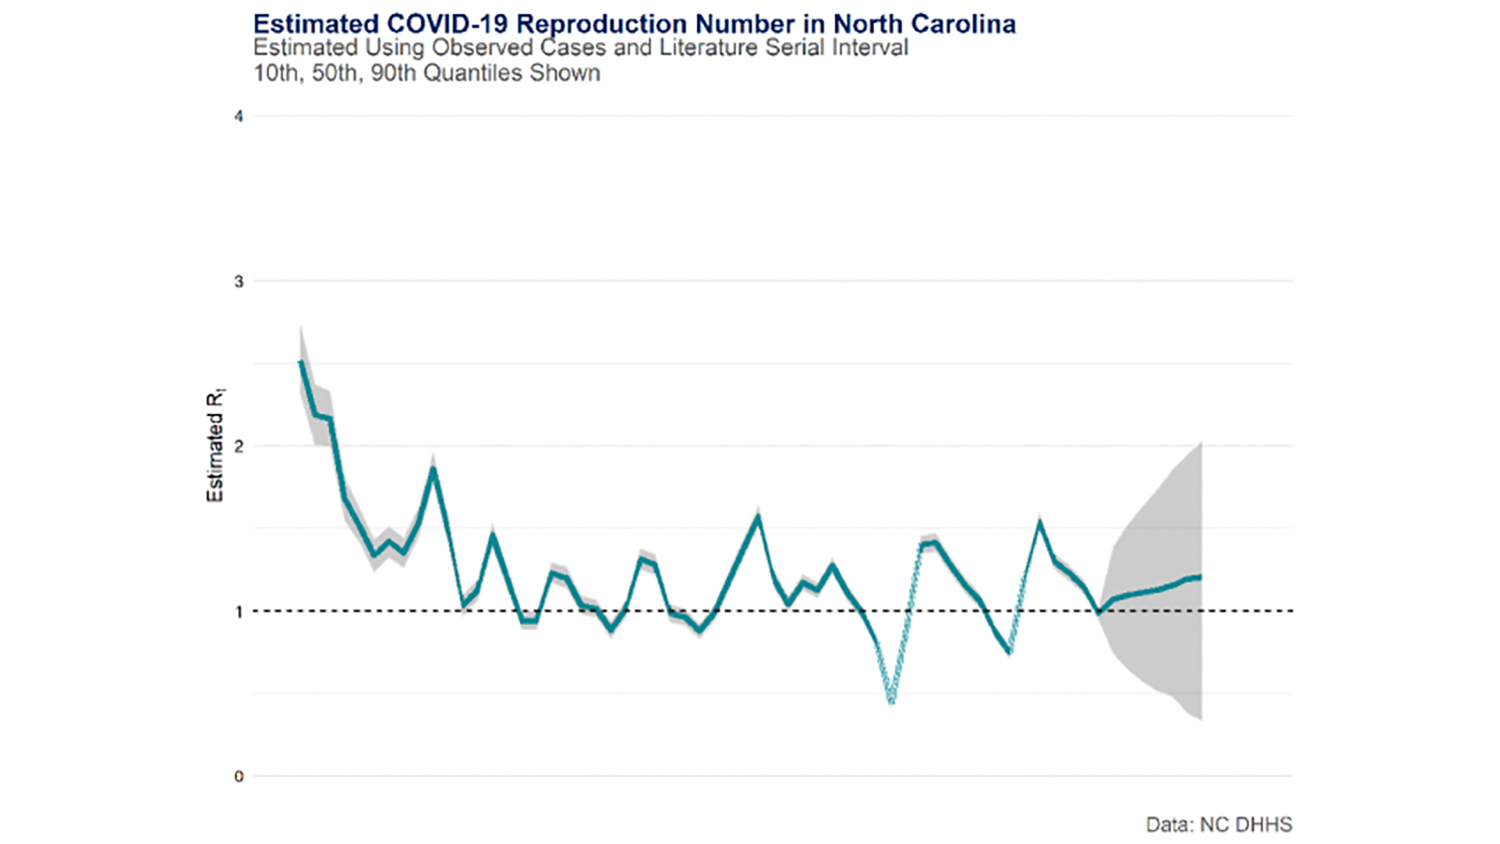 A line graph showing predictions for the estimated COVID-19 reproduction number in North Carolina